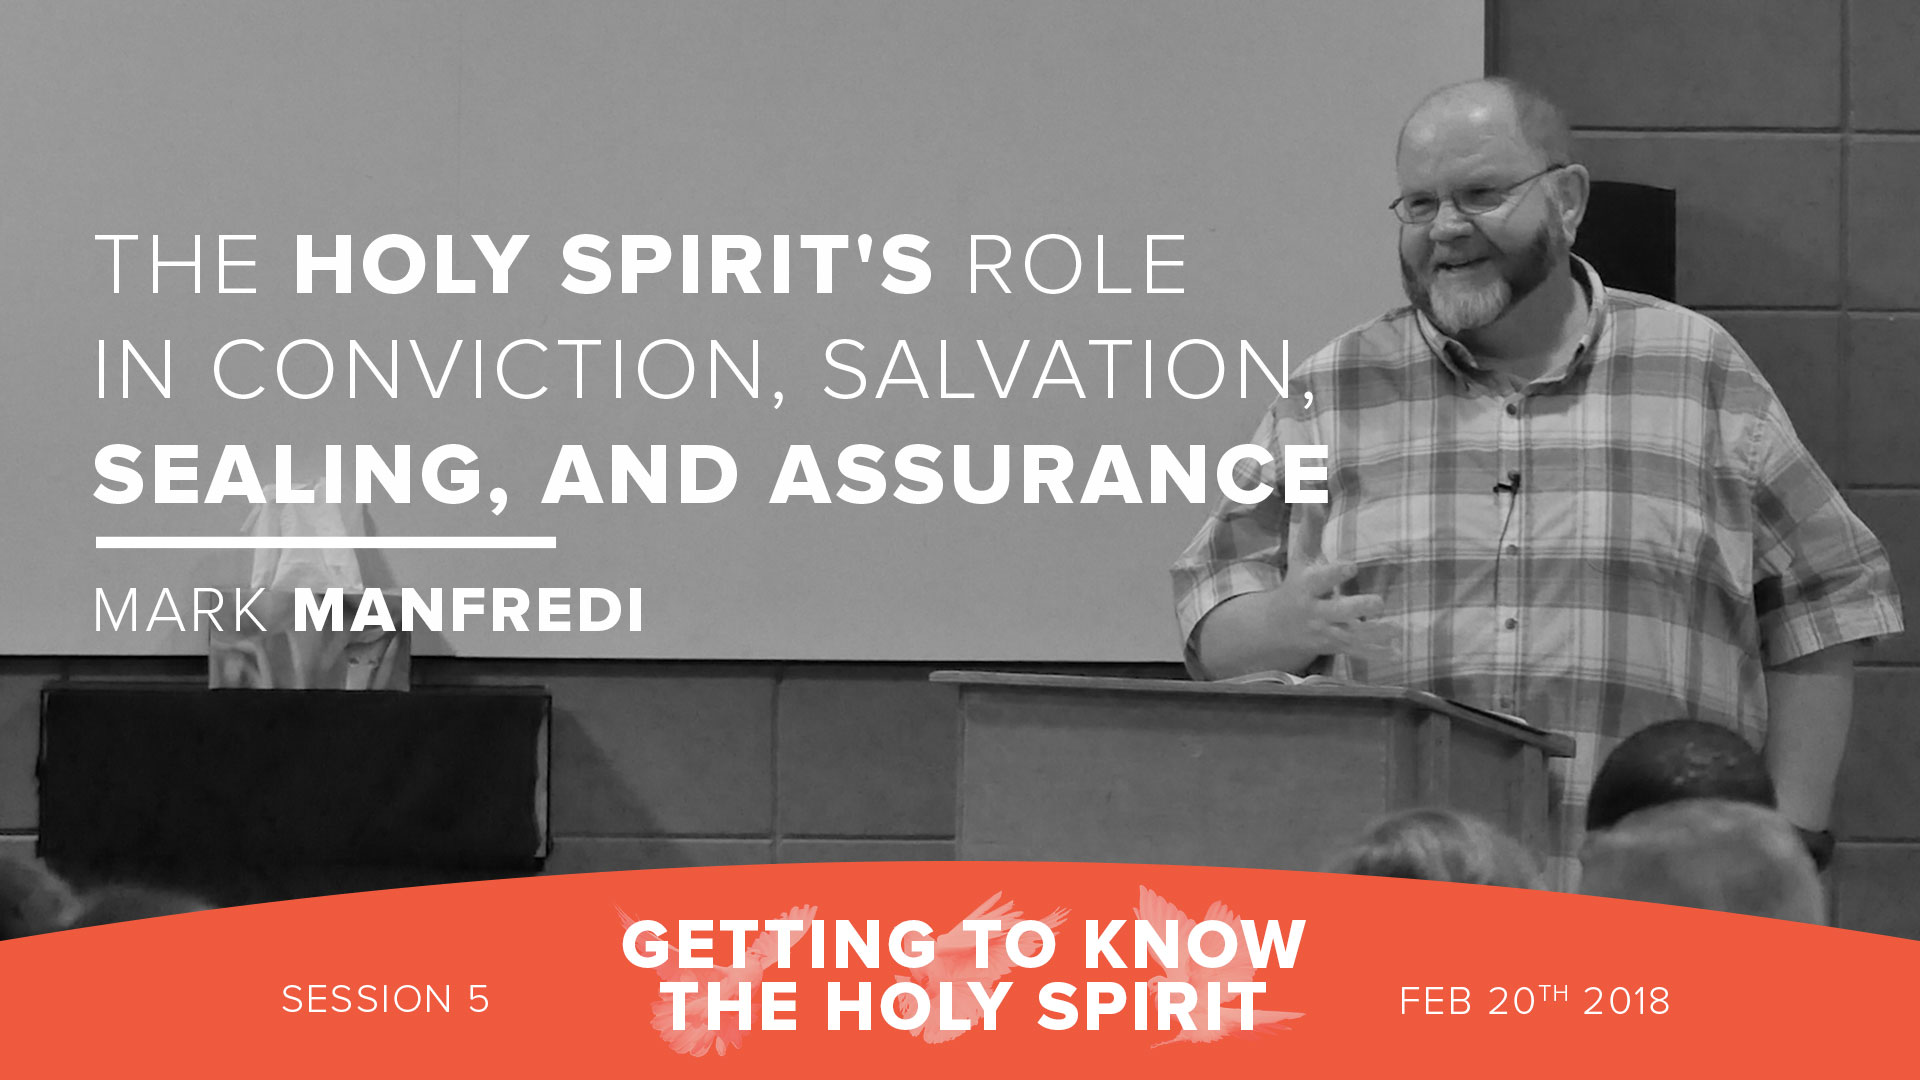 Session 5 - The Holy Spirit's role in conviction, salvation, sealing, and assurance